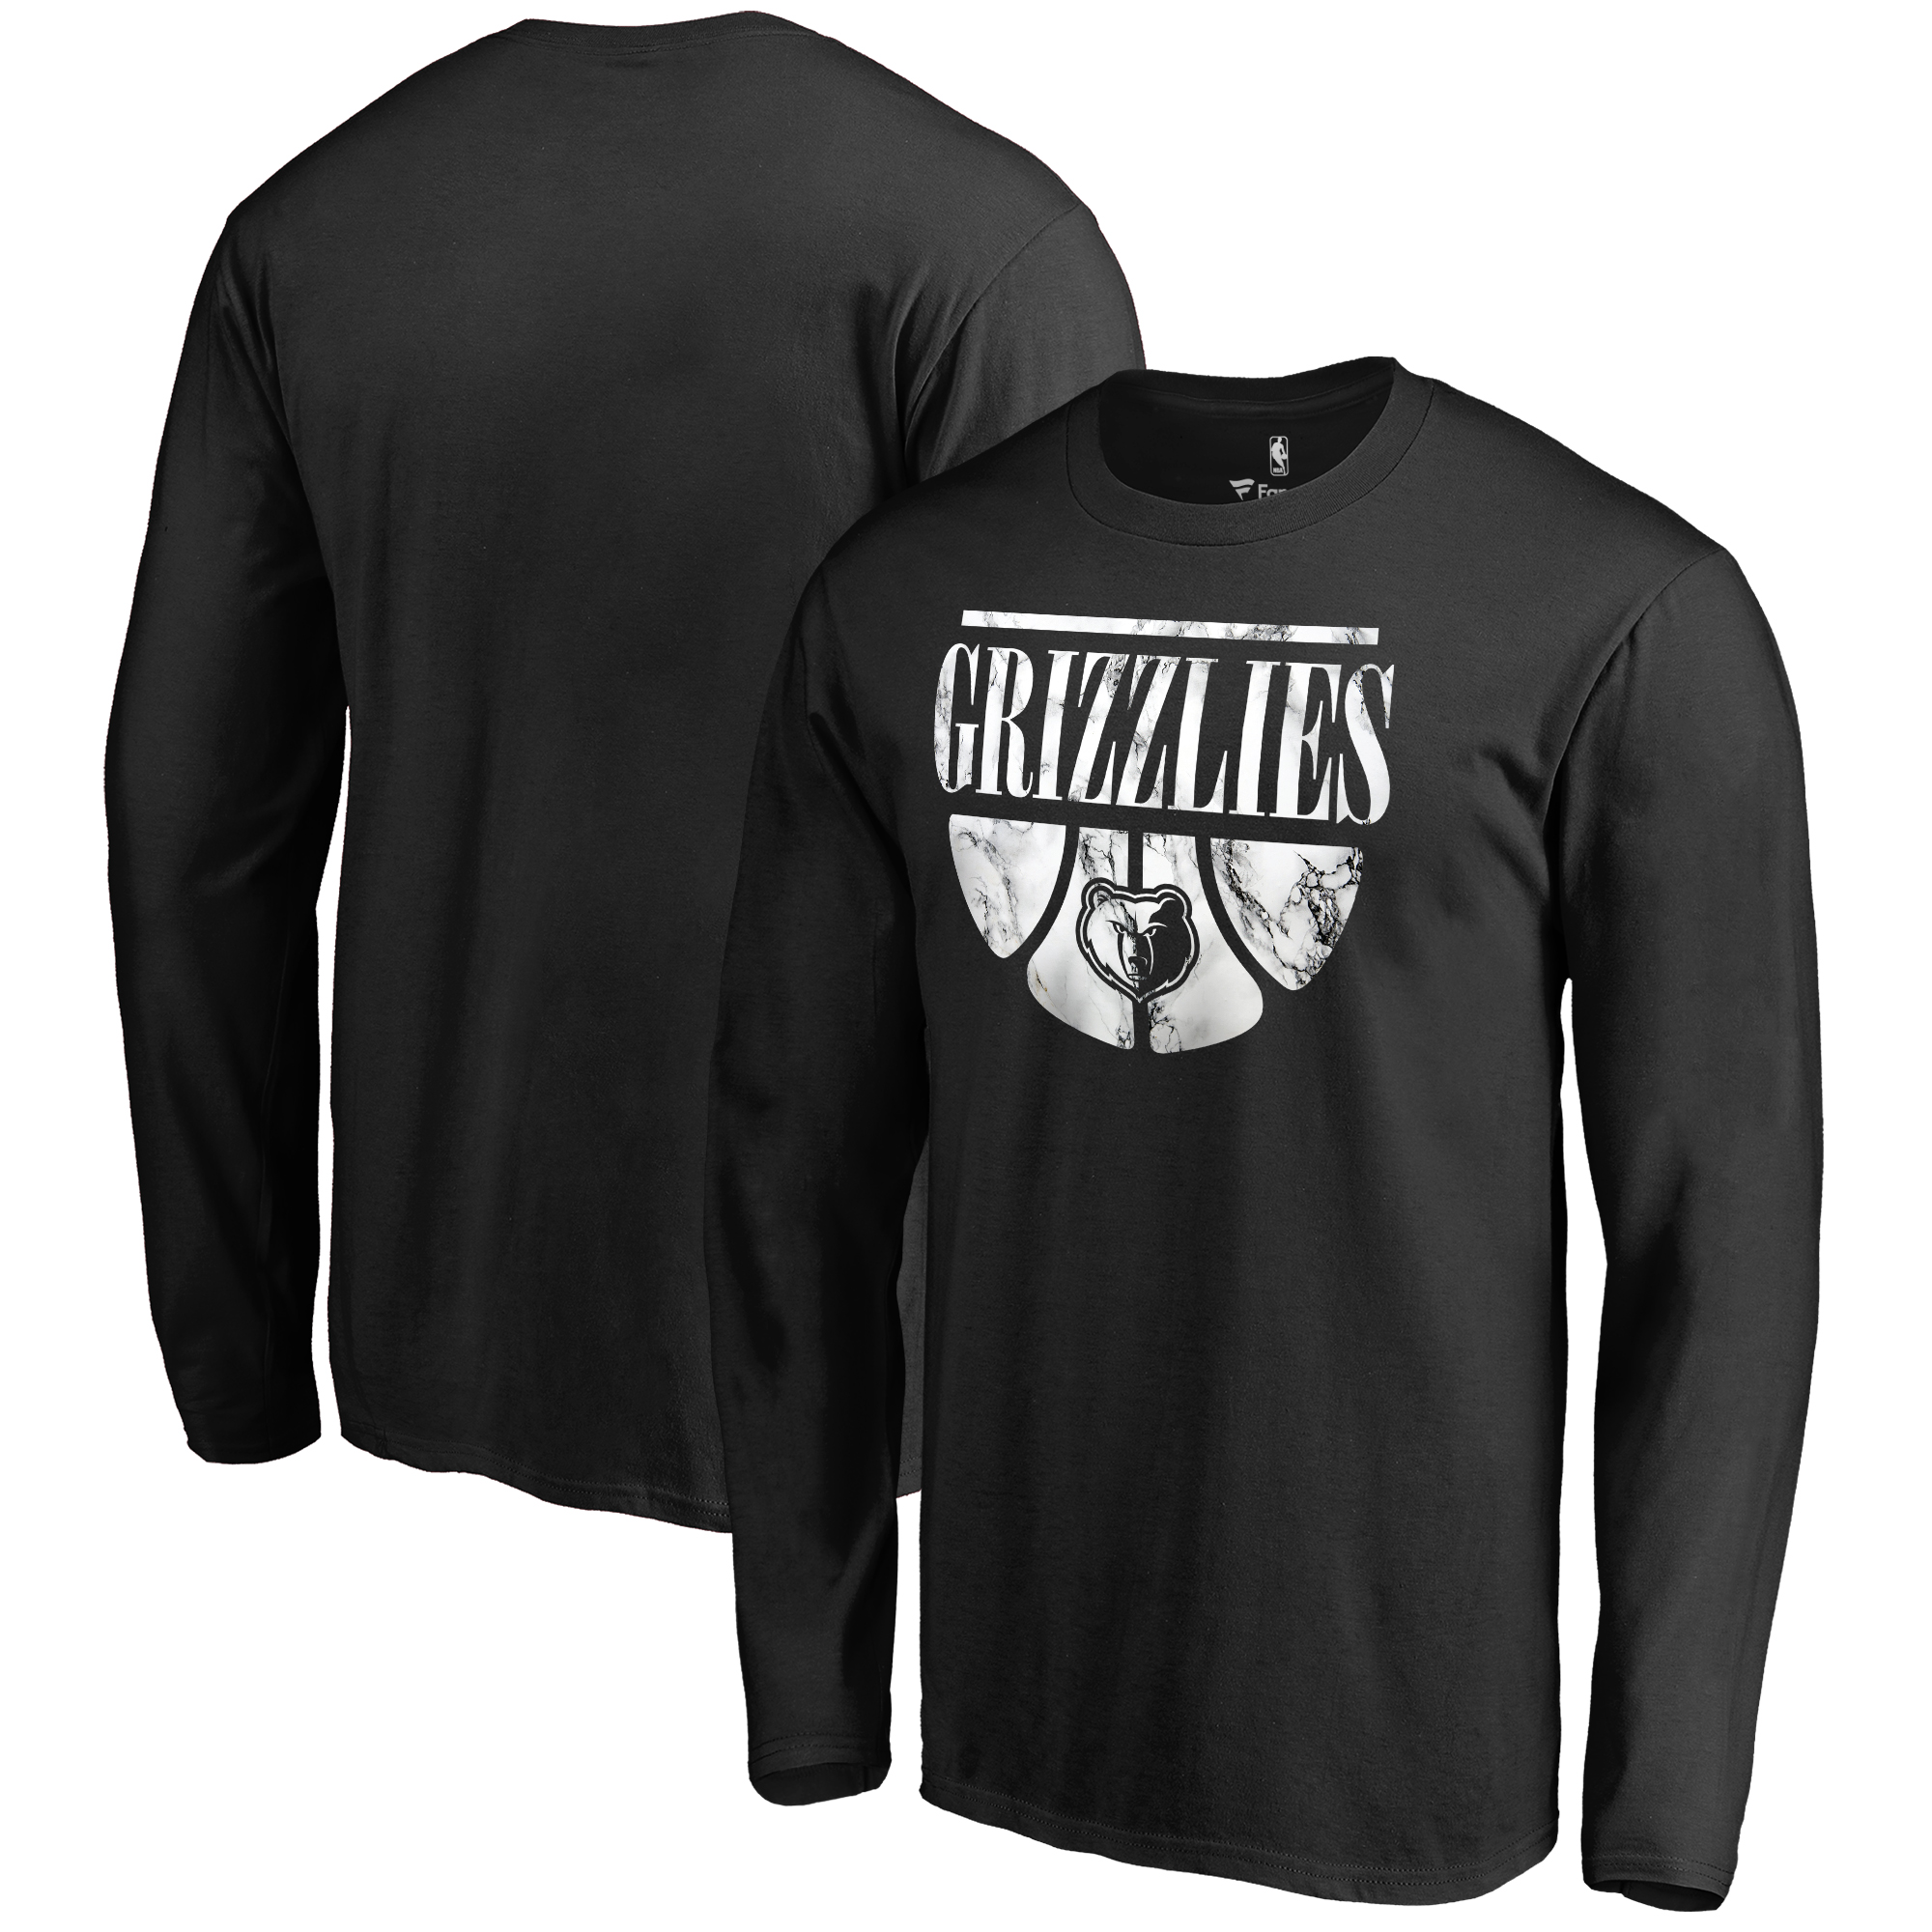 Memphis Grizzlies Fanatics Branded Buckets Long Sleeve T-Shirt - Black